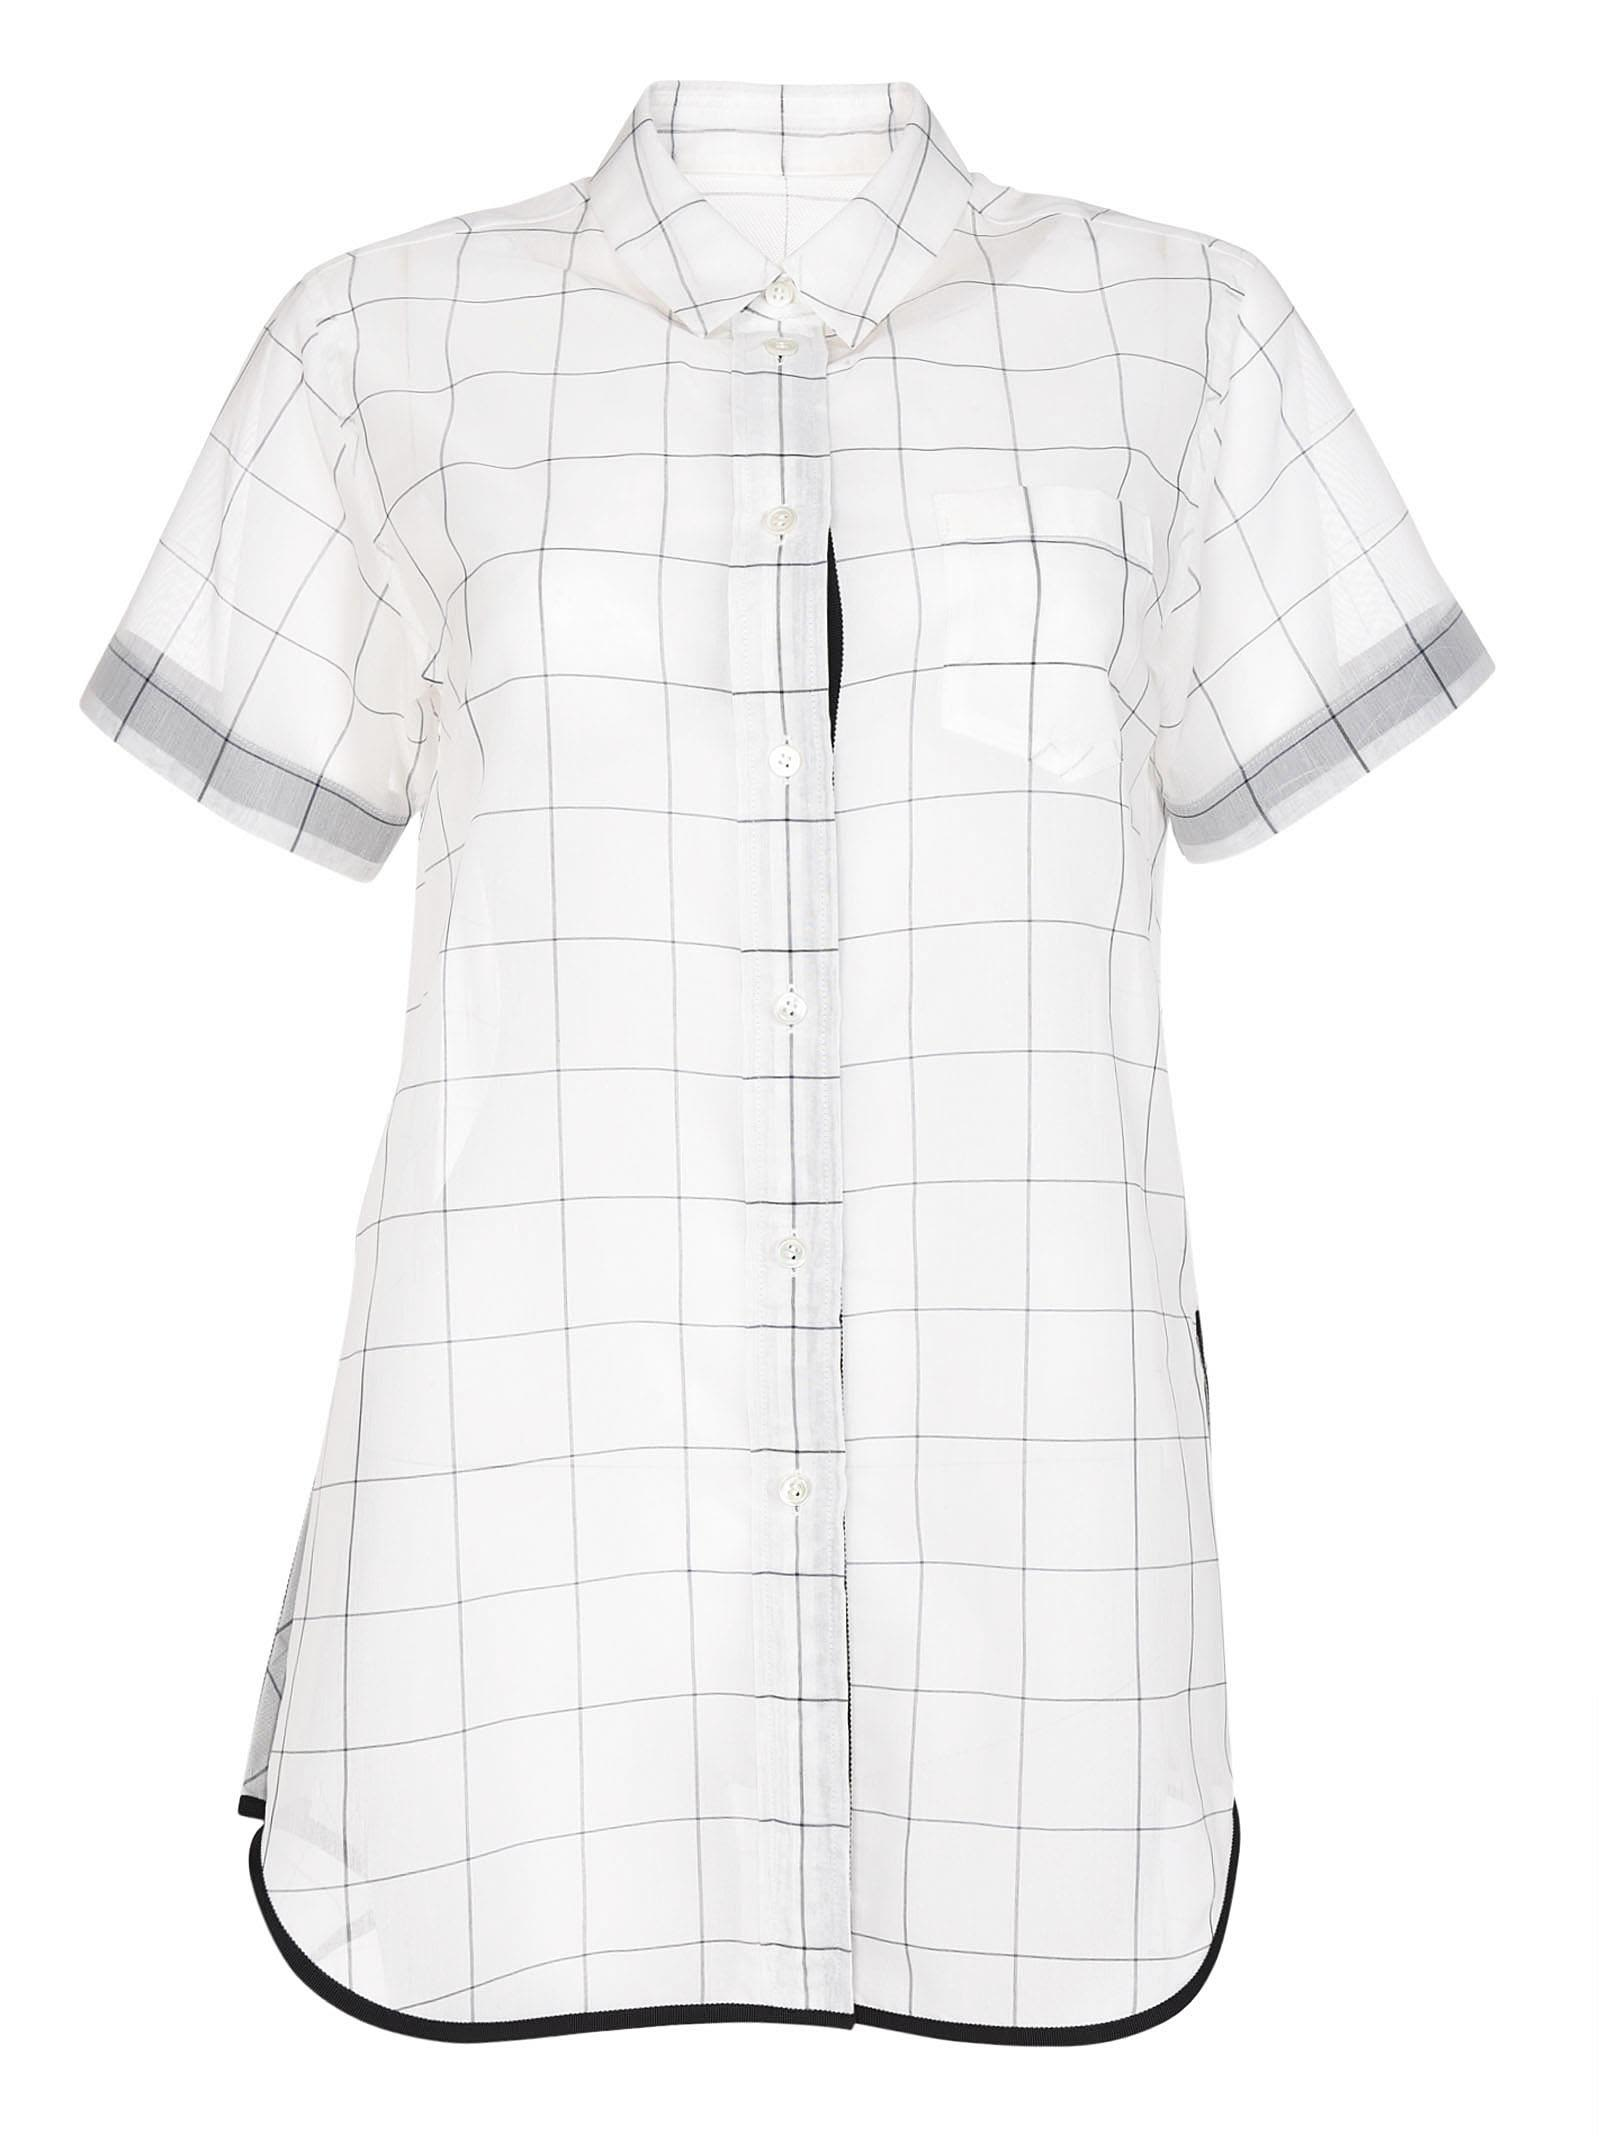 Sacai Patterned Shirt